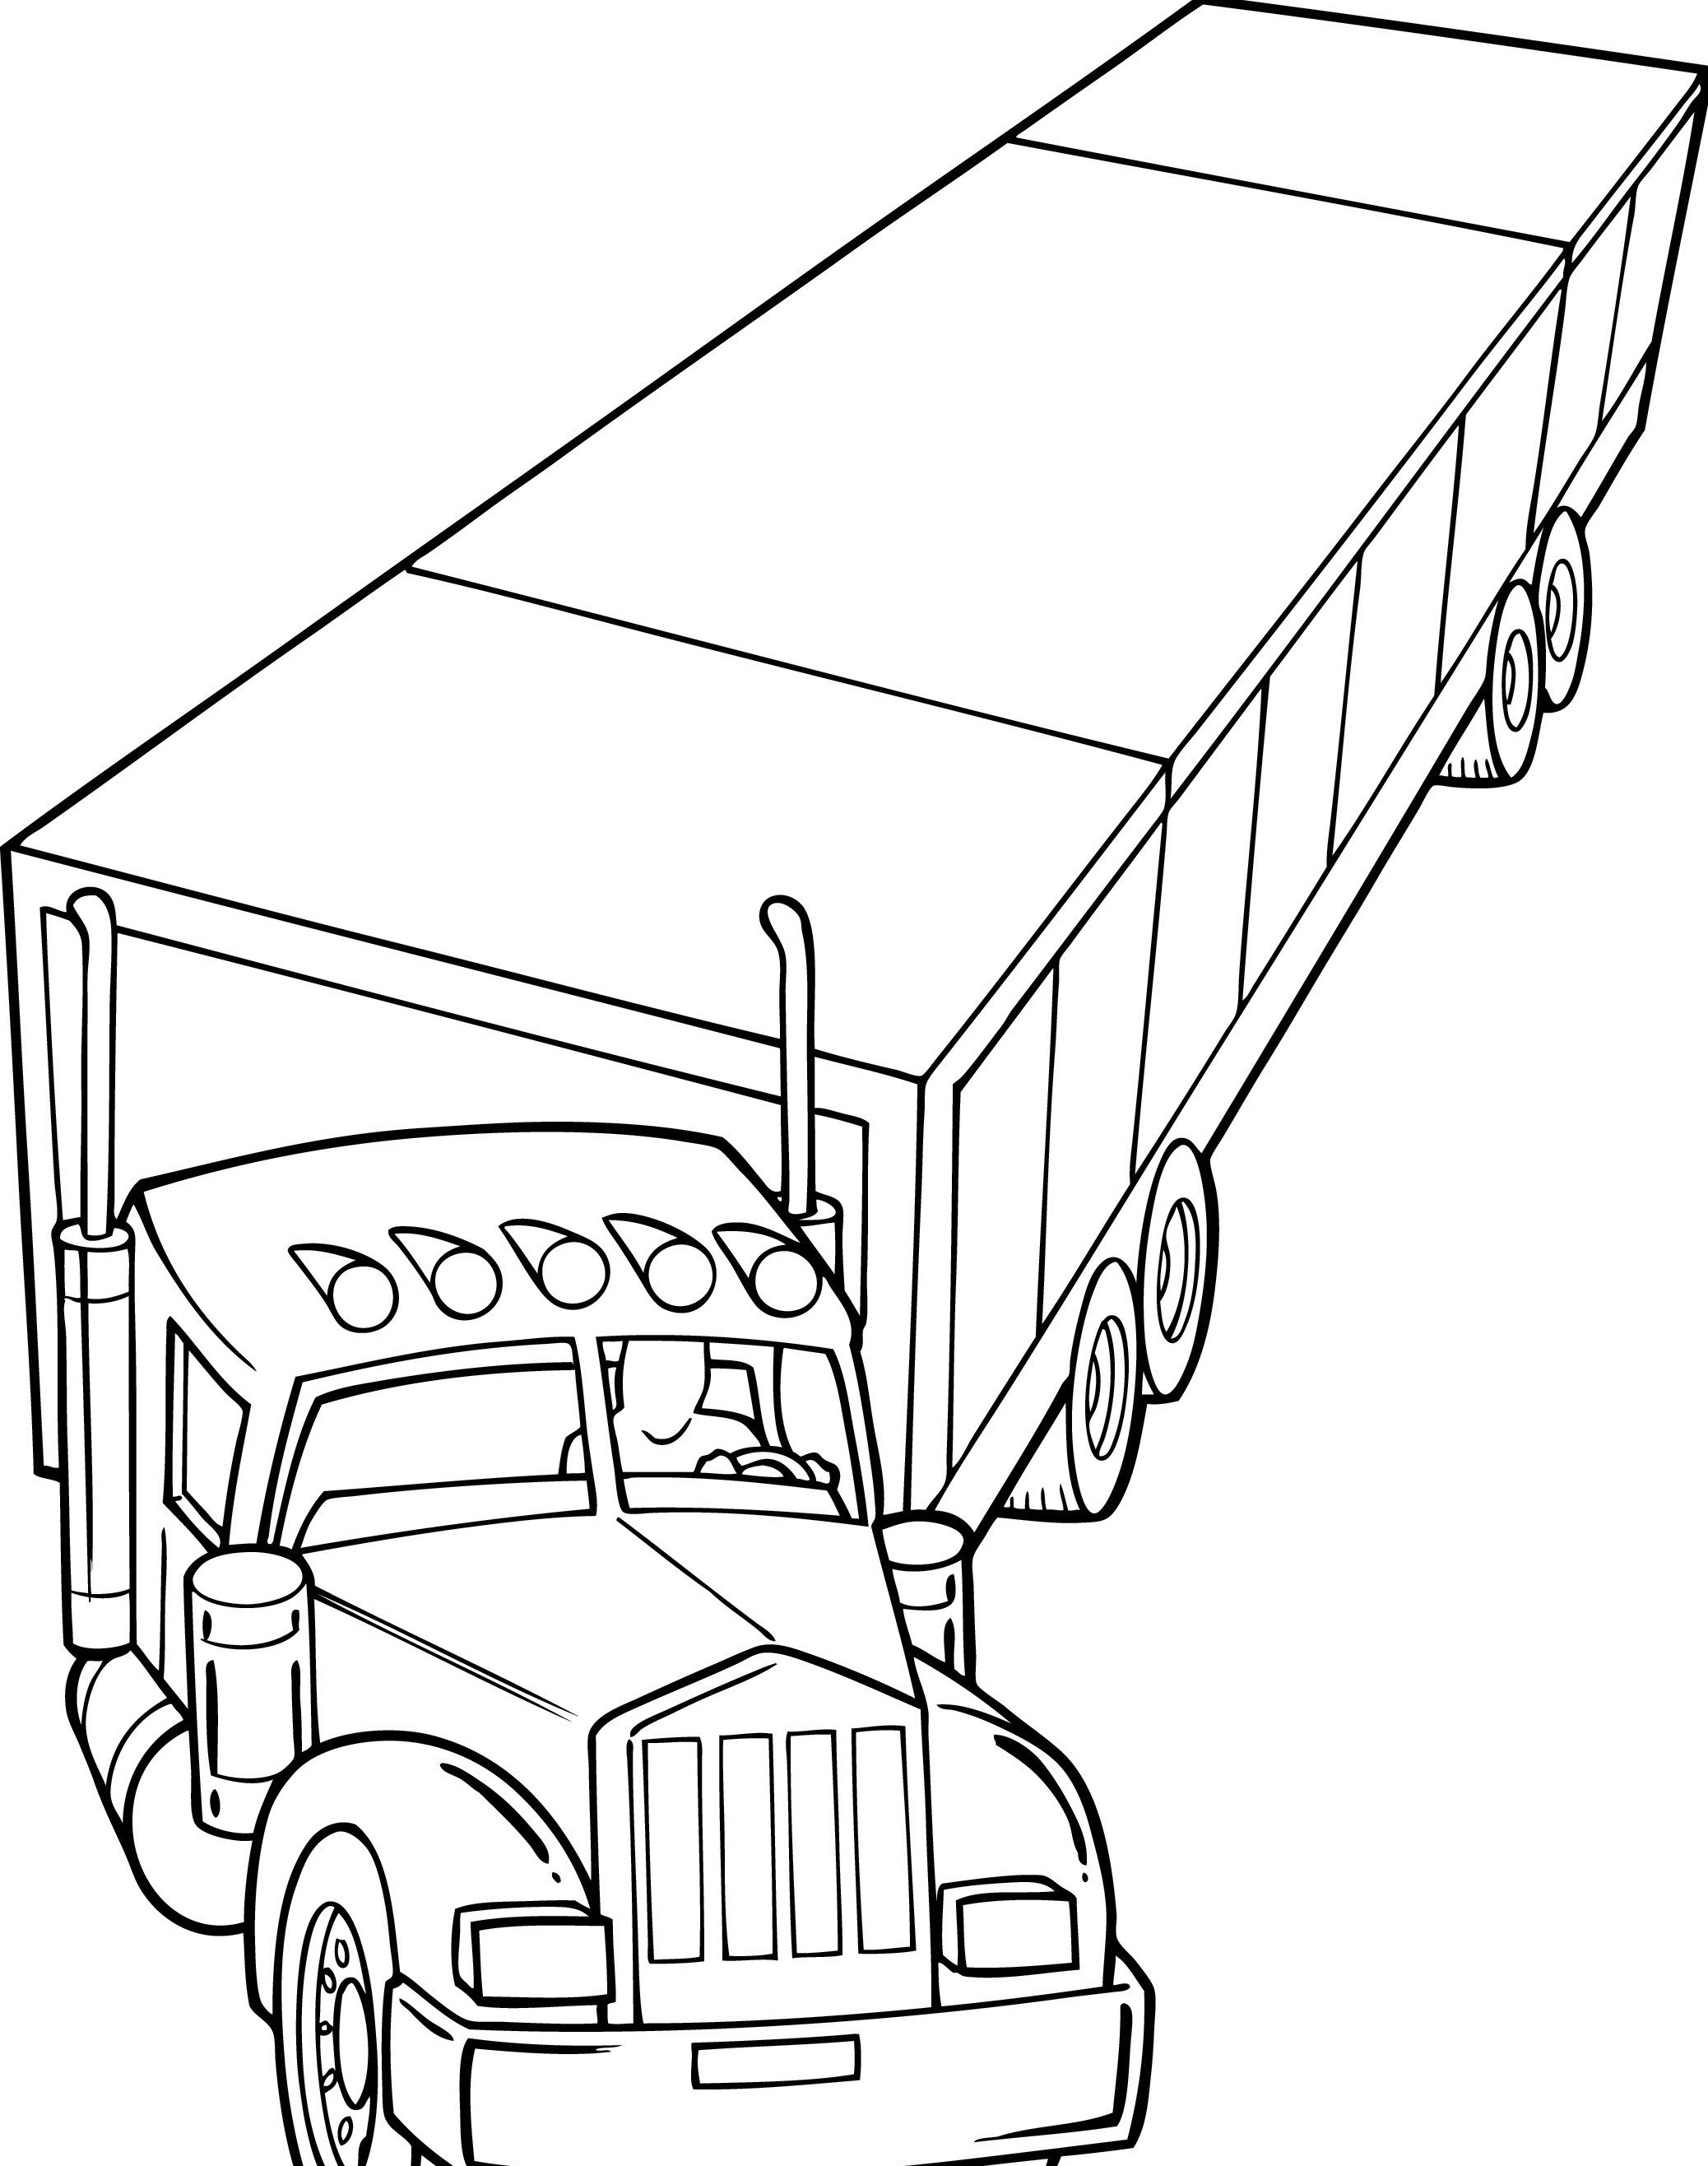 18 Wheeler Coloring Pages - Coloring Home